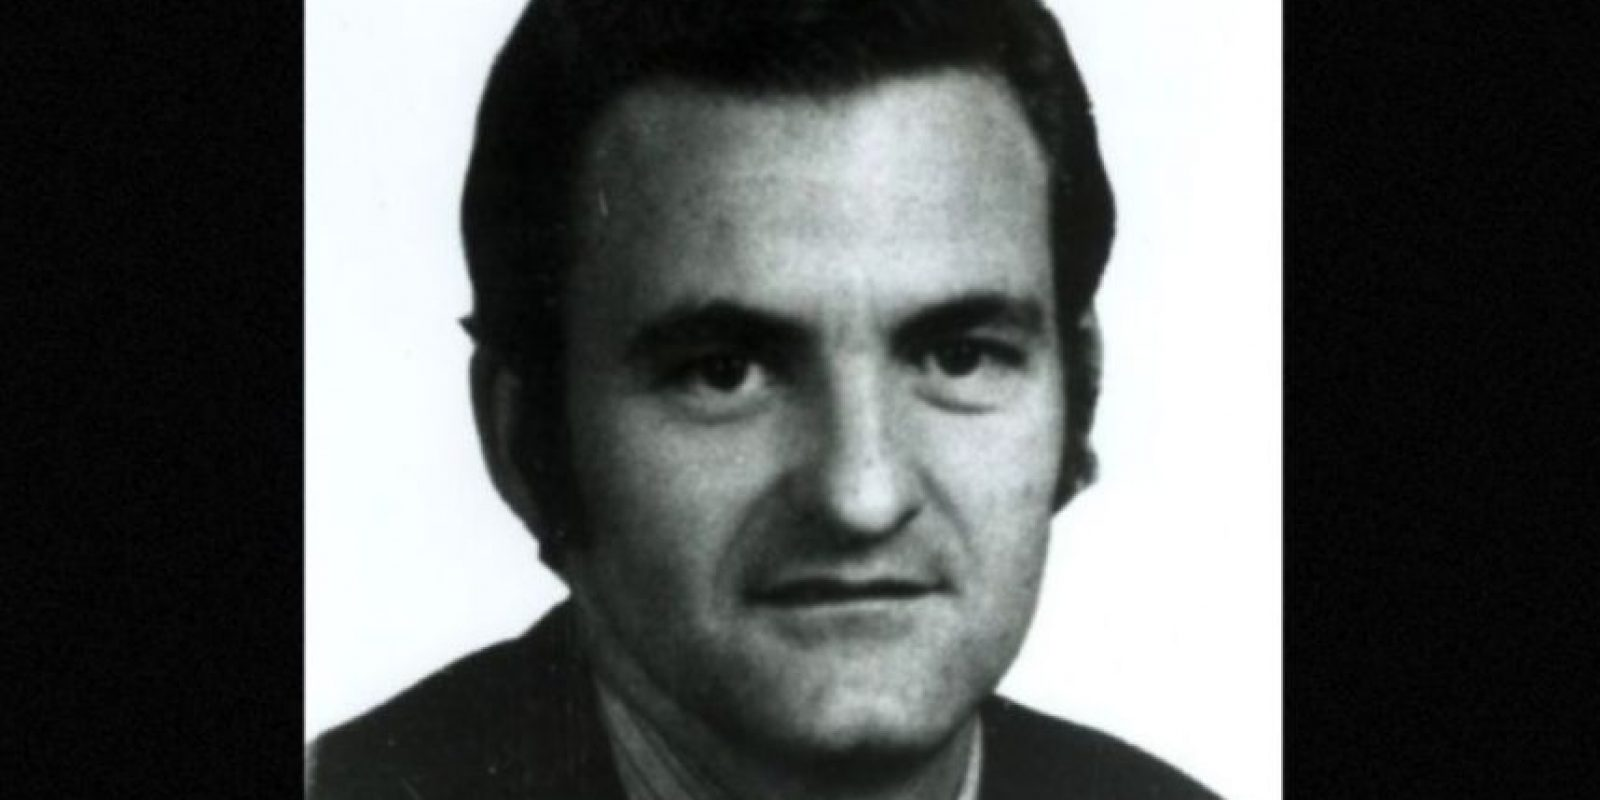 9. William Bradford Bishop, Jr. Foto:  fbi.gov/wanted/topten